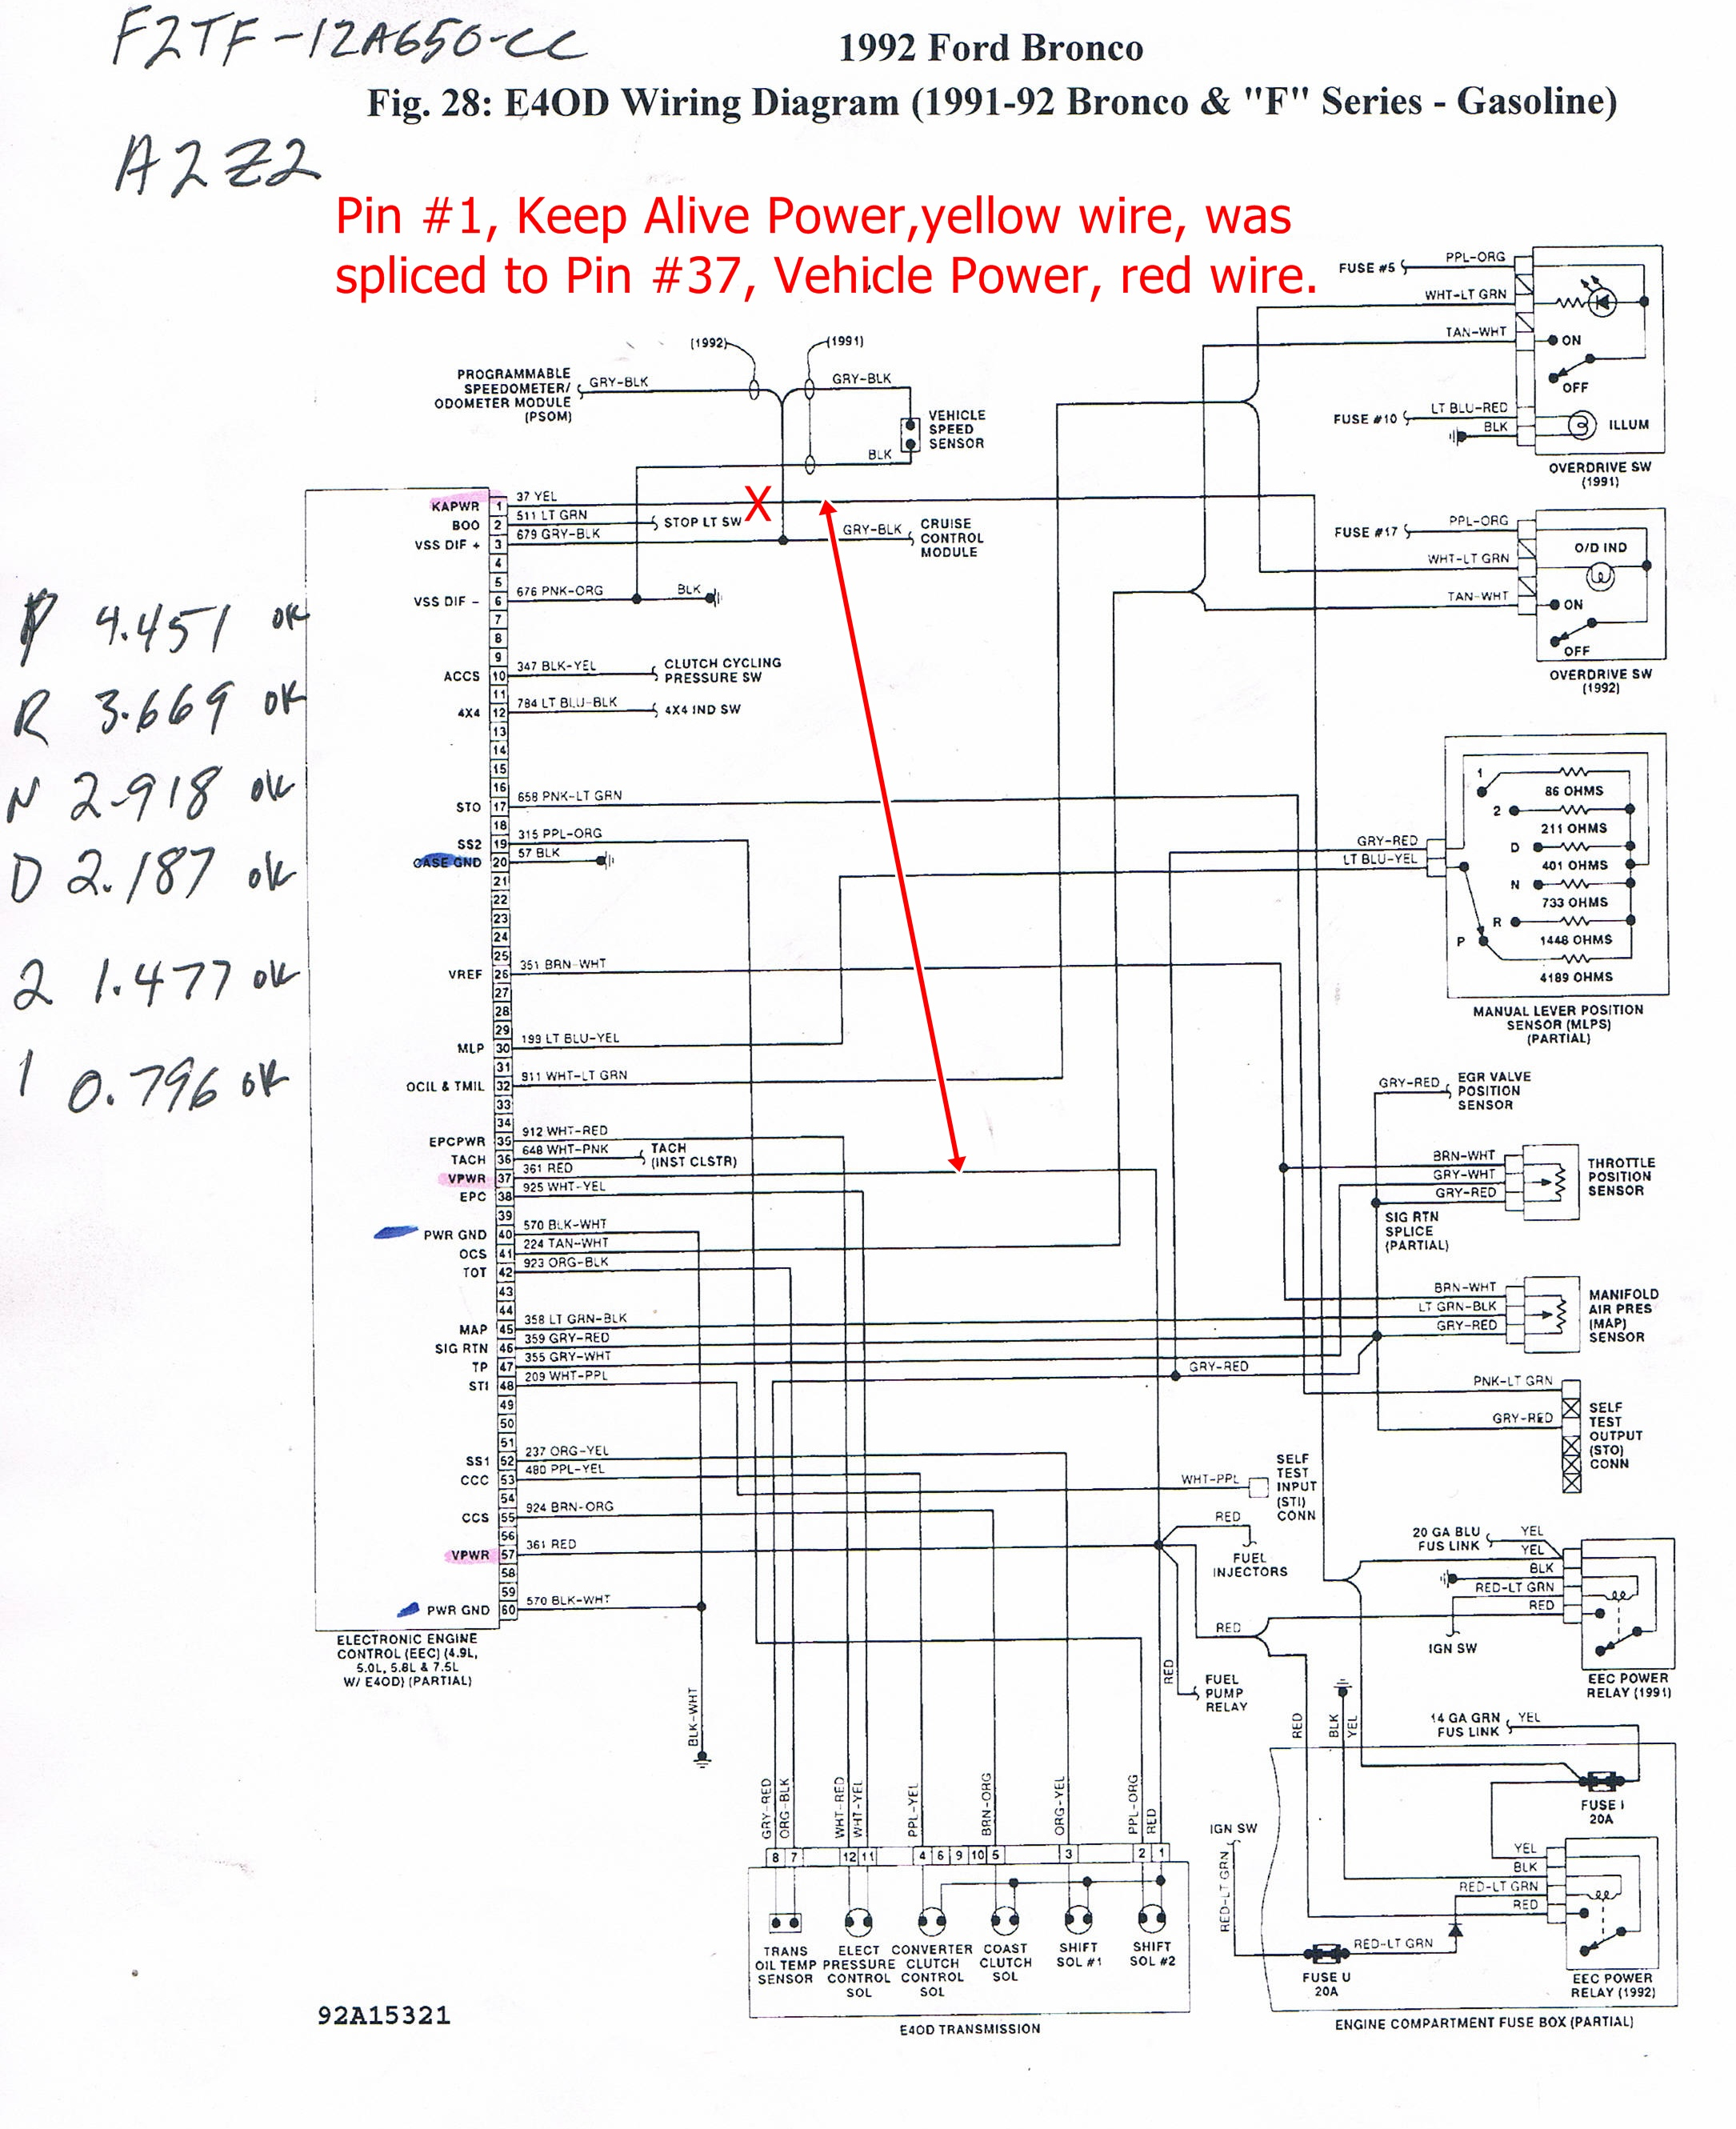 2002 Polaris Ranger Fuse Box Location Data Wiring Diagrams 1995 Land Rover Defender Images Gallery